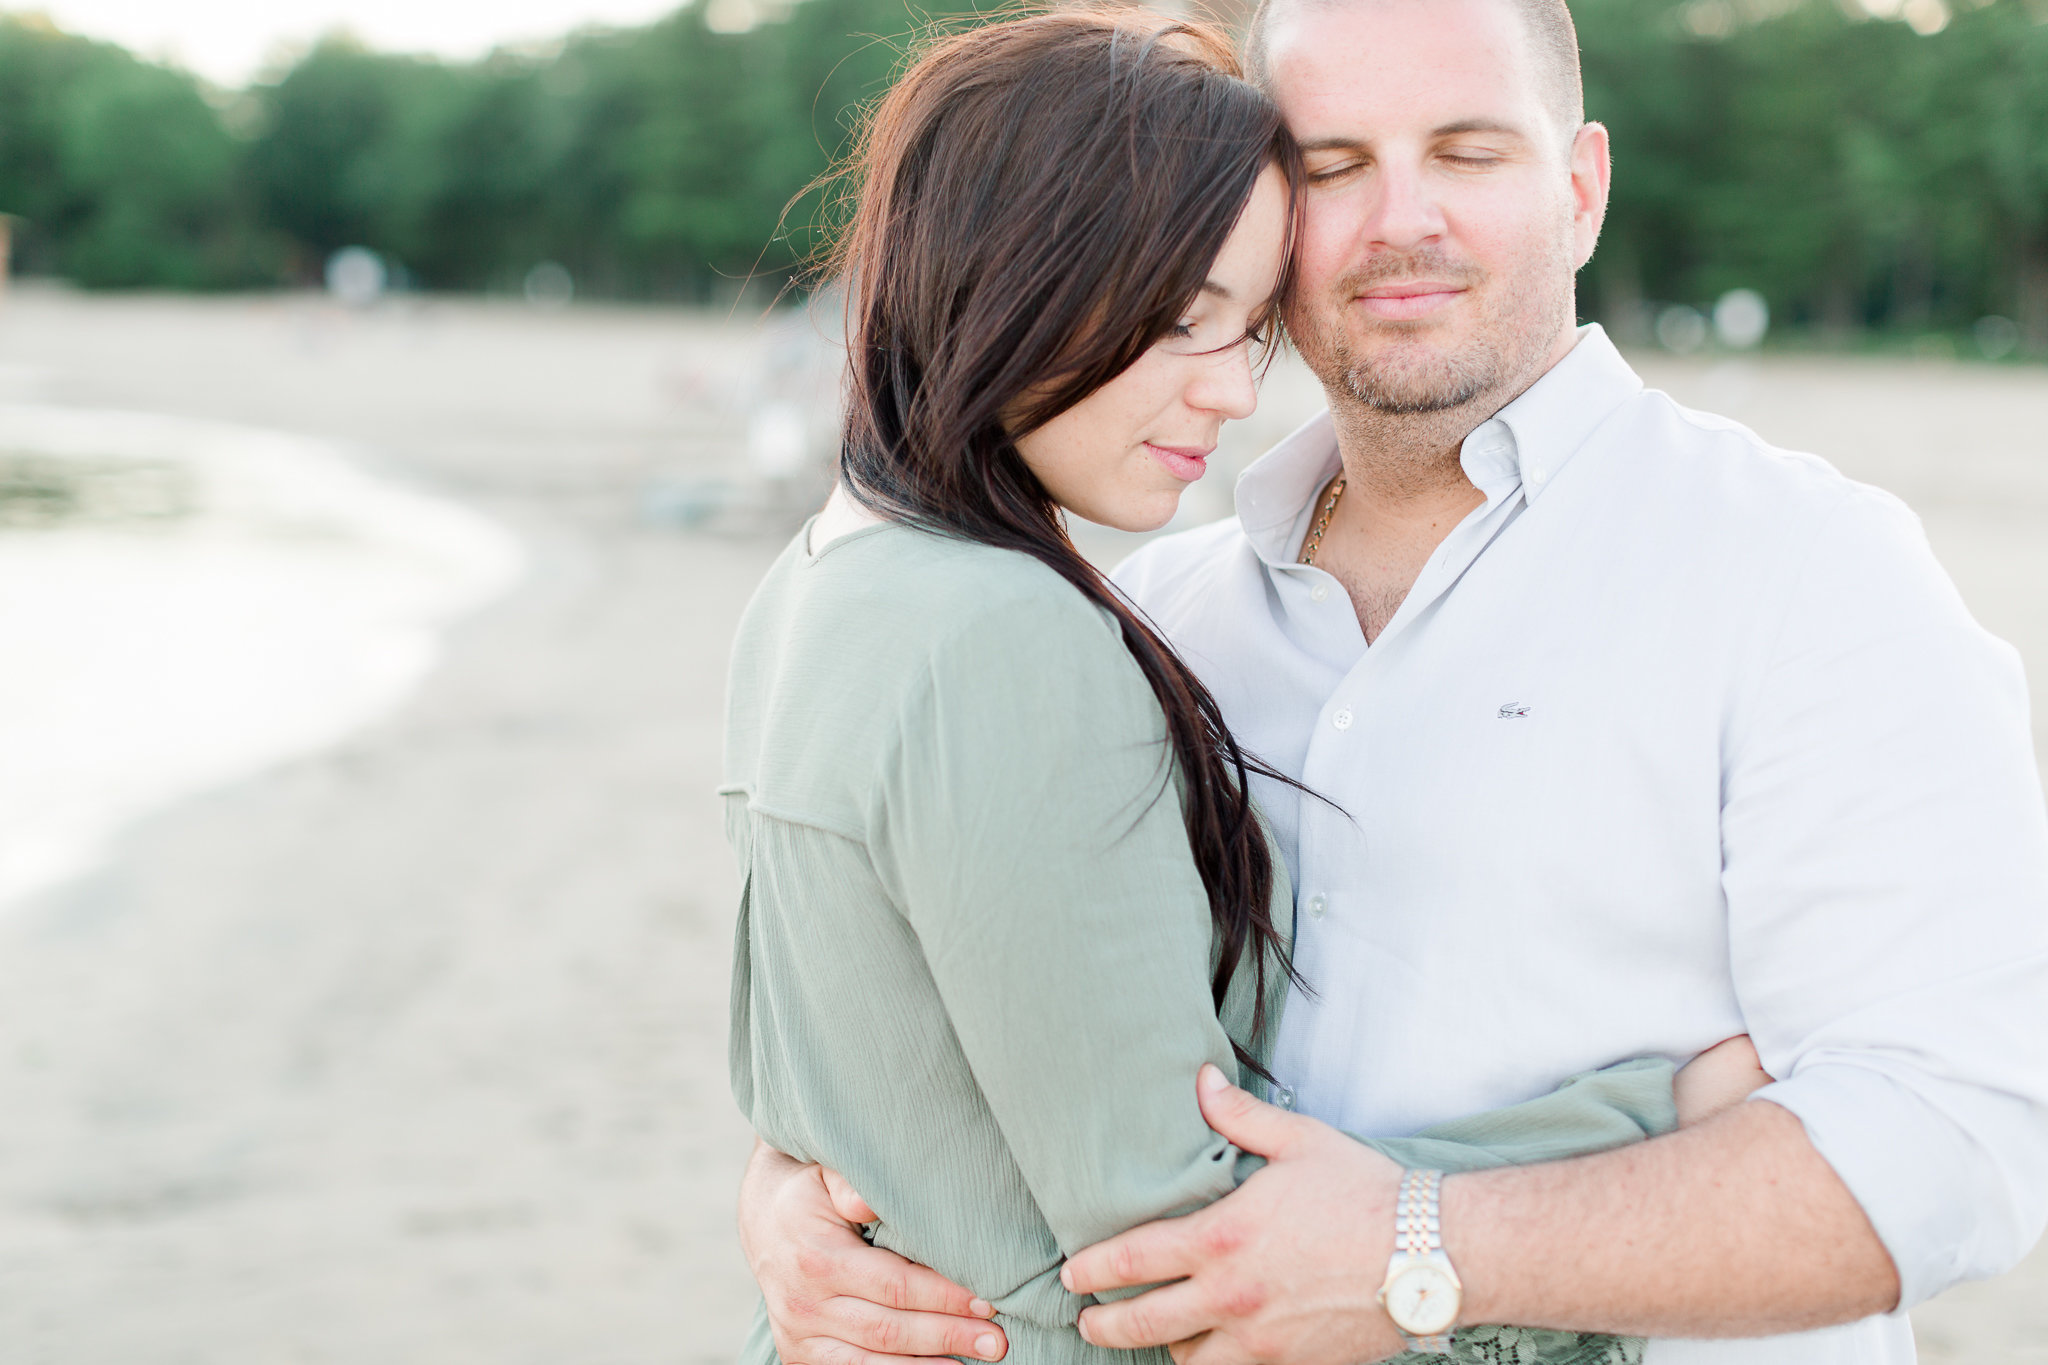 photographe-fiancailles-montreal-parc-national-oka-lisa-renault-photographie-beach-engagement-session-56